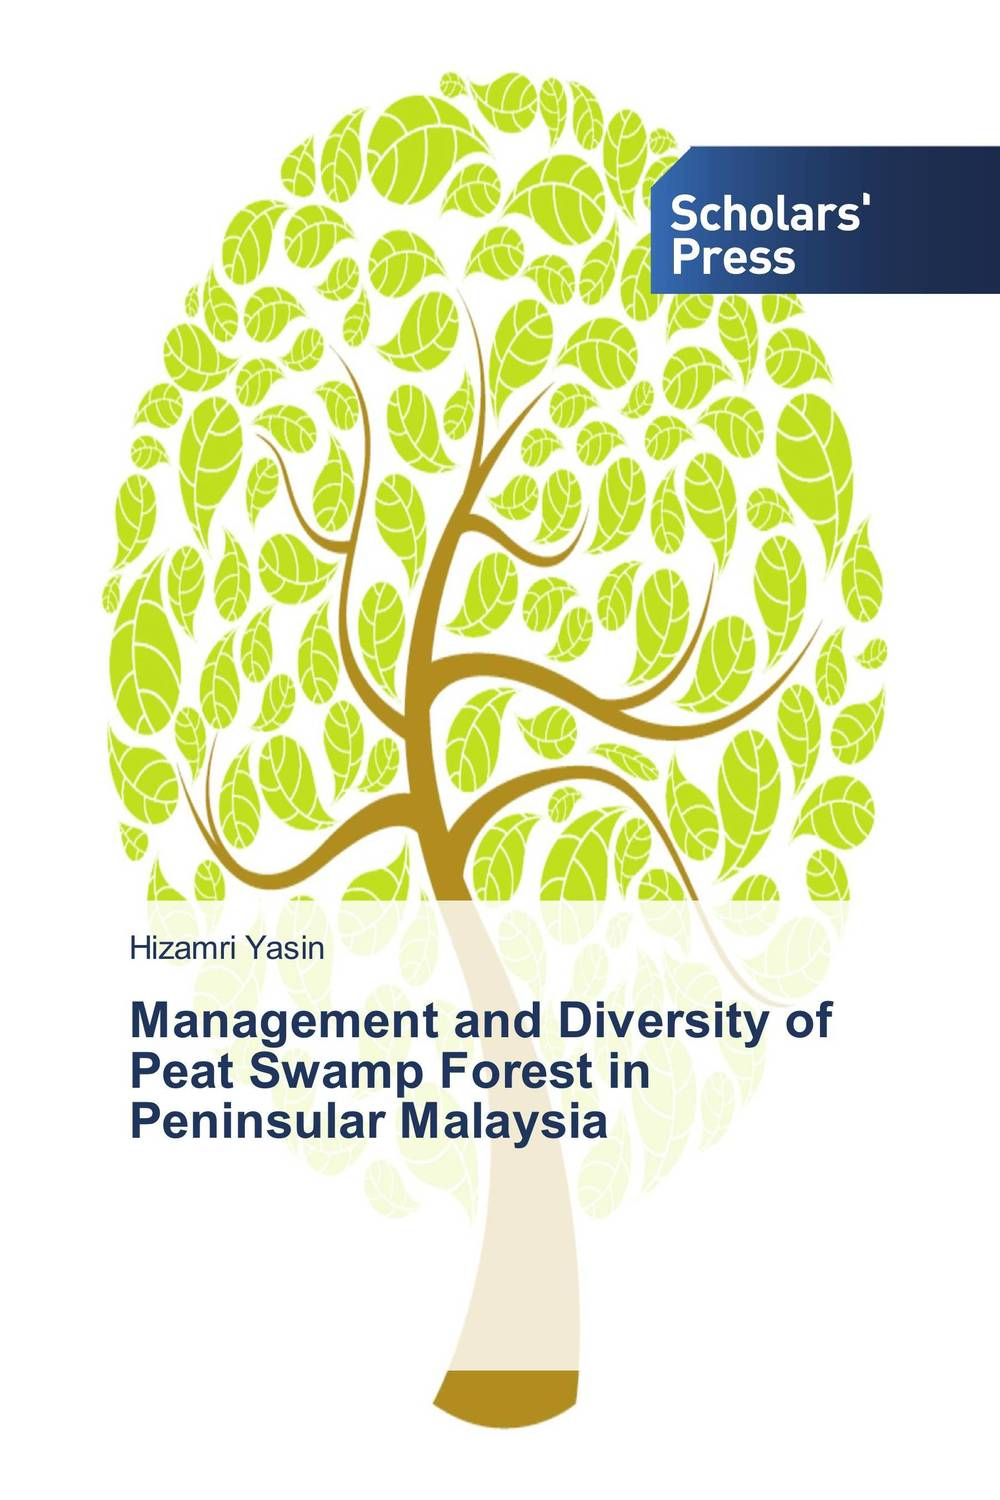 Management and Diversity of Peat Swamp Forest in Peninsular Malaysia conflicts in forest resources usage and management